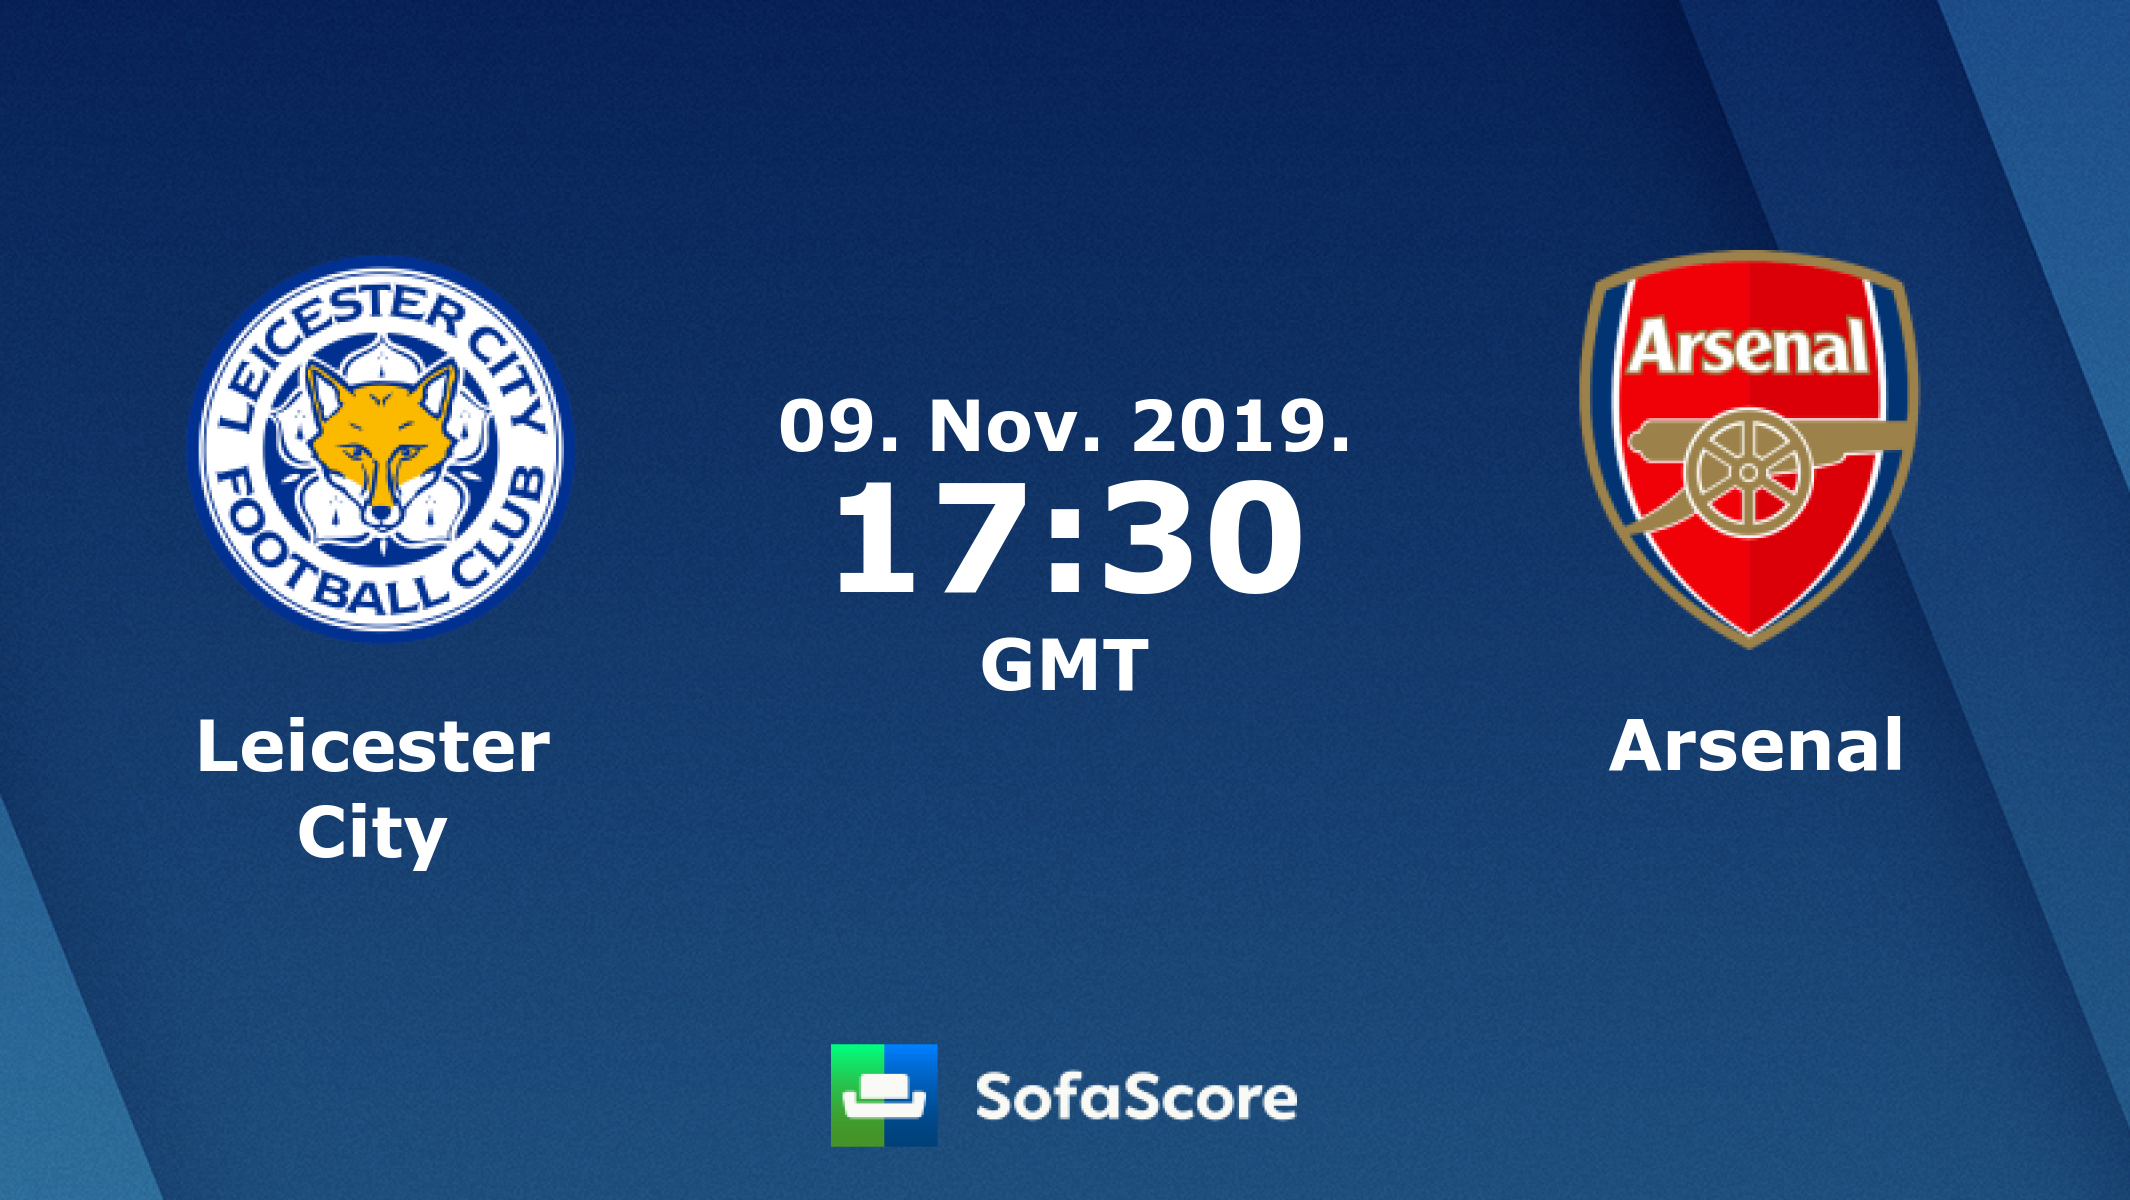 Leicester City Arsenal live score, video stream and H2H results